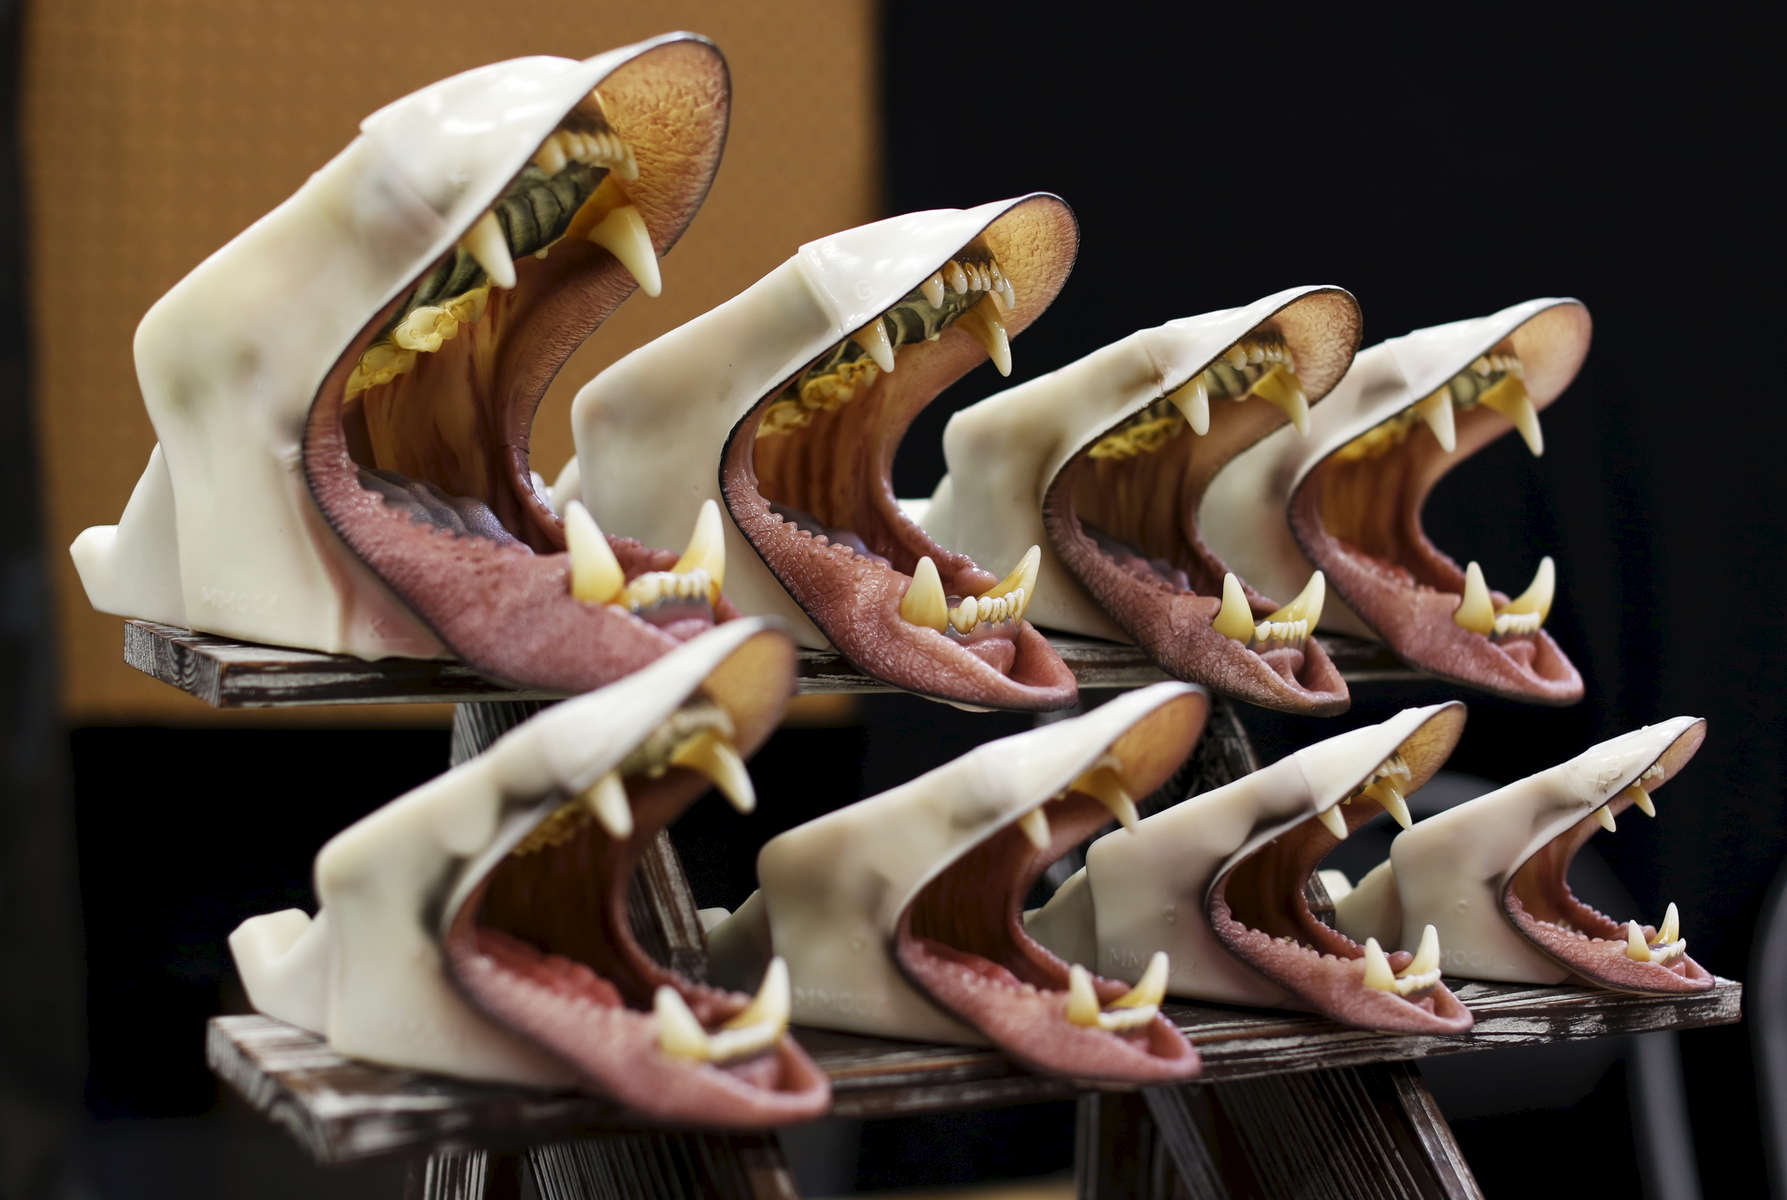 Reproductions of mouths are on sale at the Taxidermy Trade Show happening next to the World Taxidermy & Fish Carving Championships, in Springfield, Missouri on May 2, 2019.